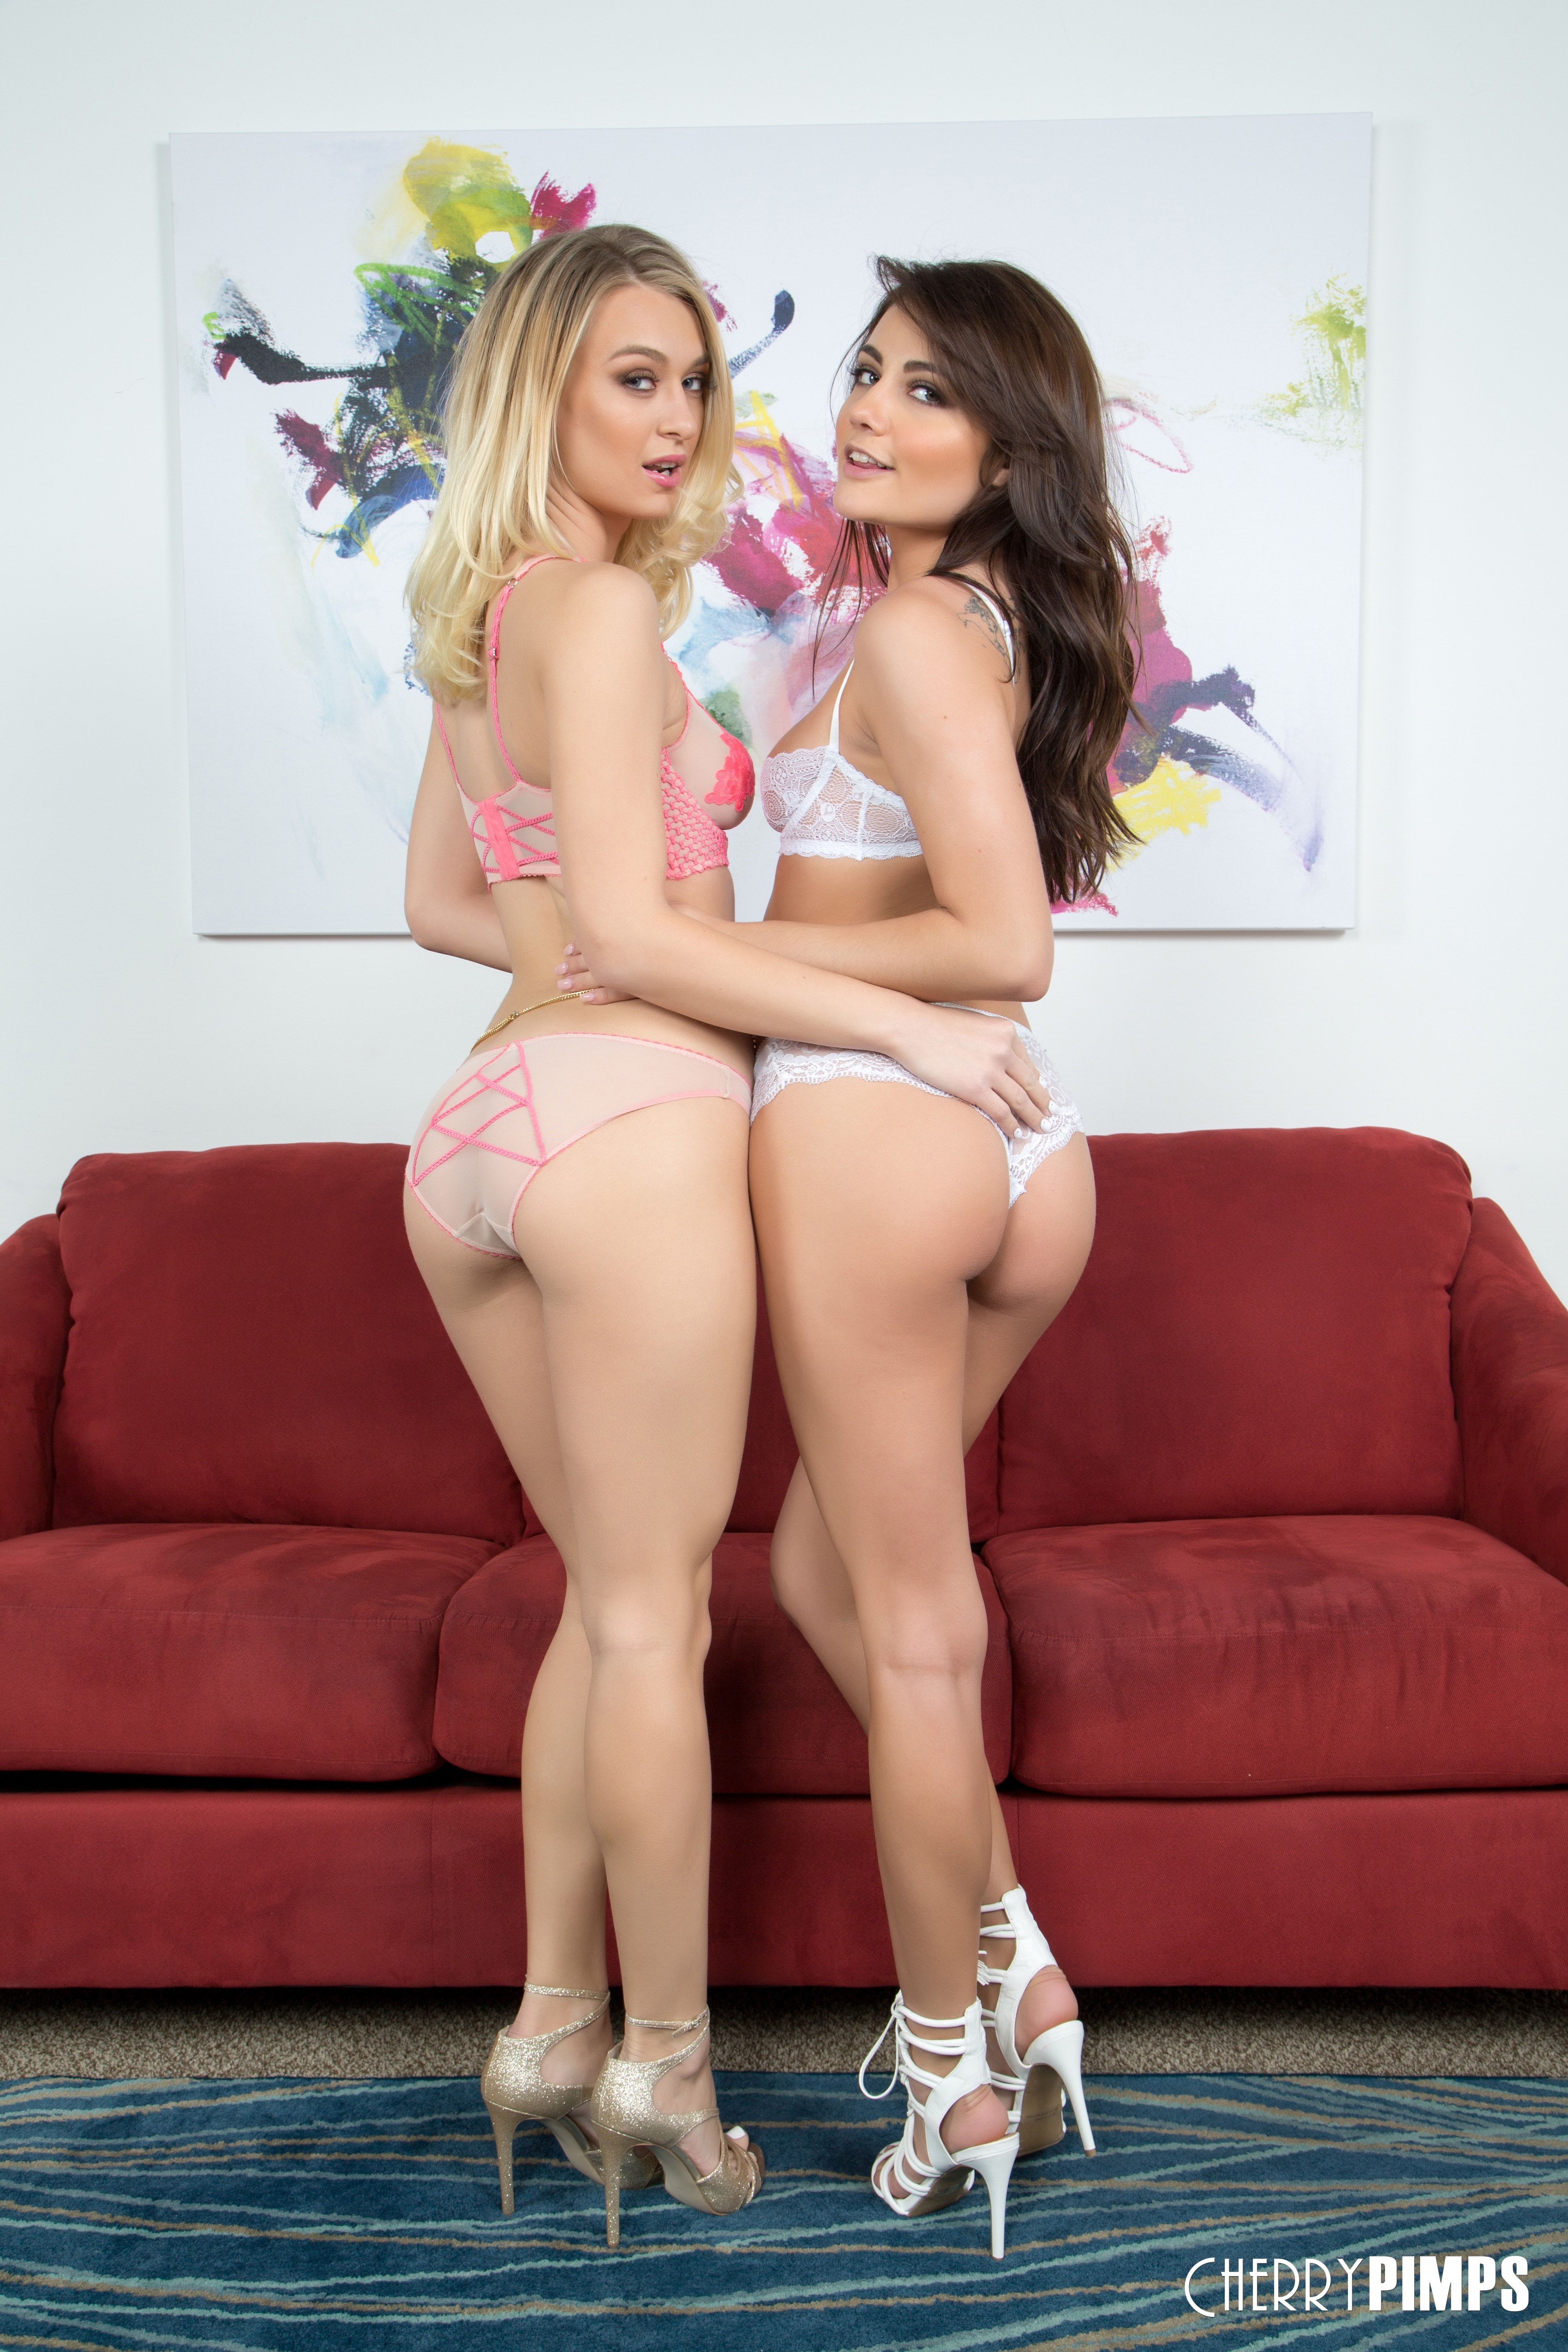 Cherry Pimps 'Smiling Hot Duo' starring Adria Rae (photo 41)